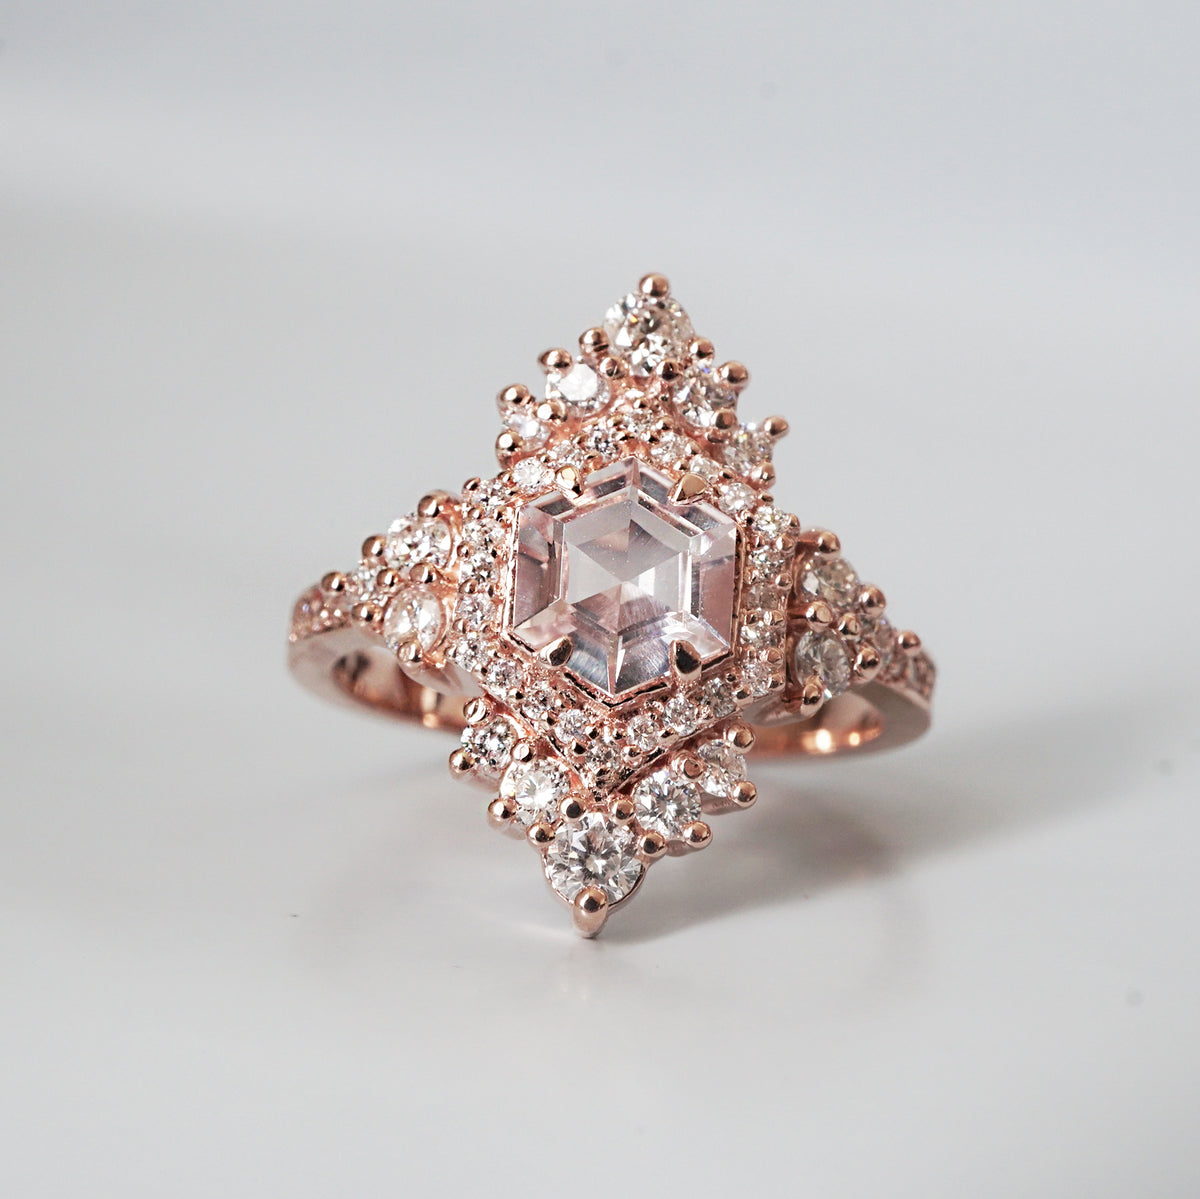 Chandelier Morganite Diamond Ring - Tippy Taste Jewelry